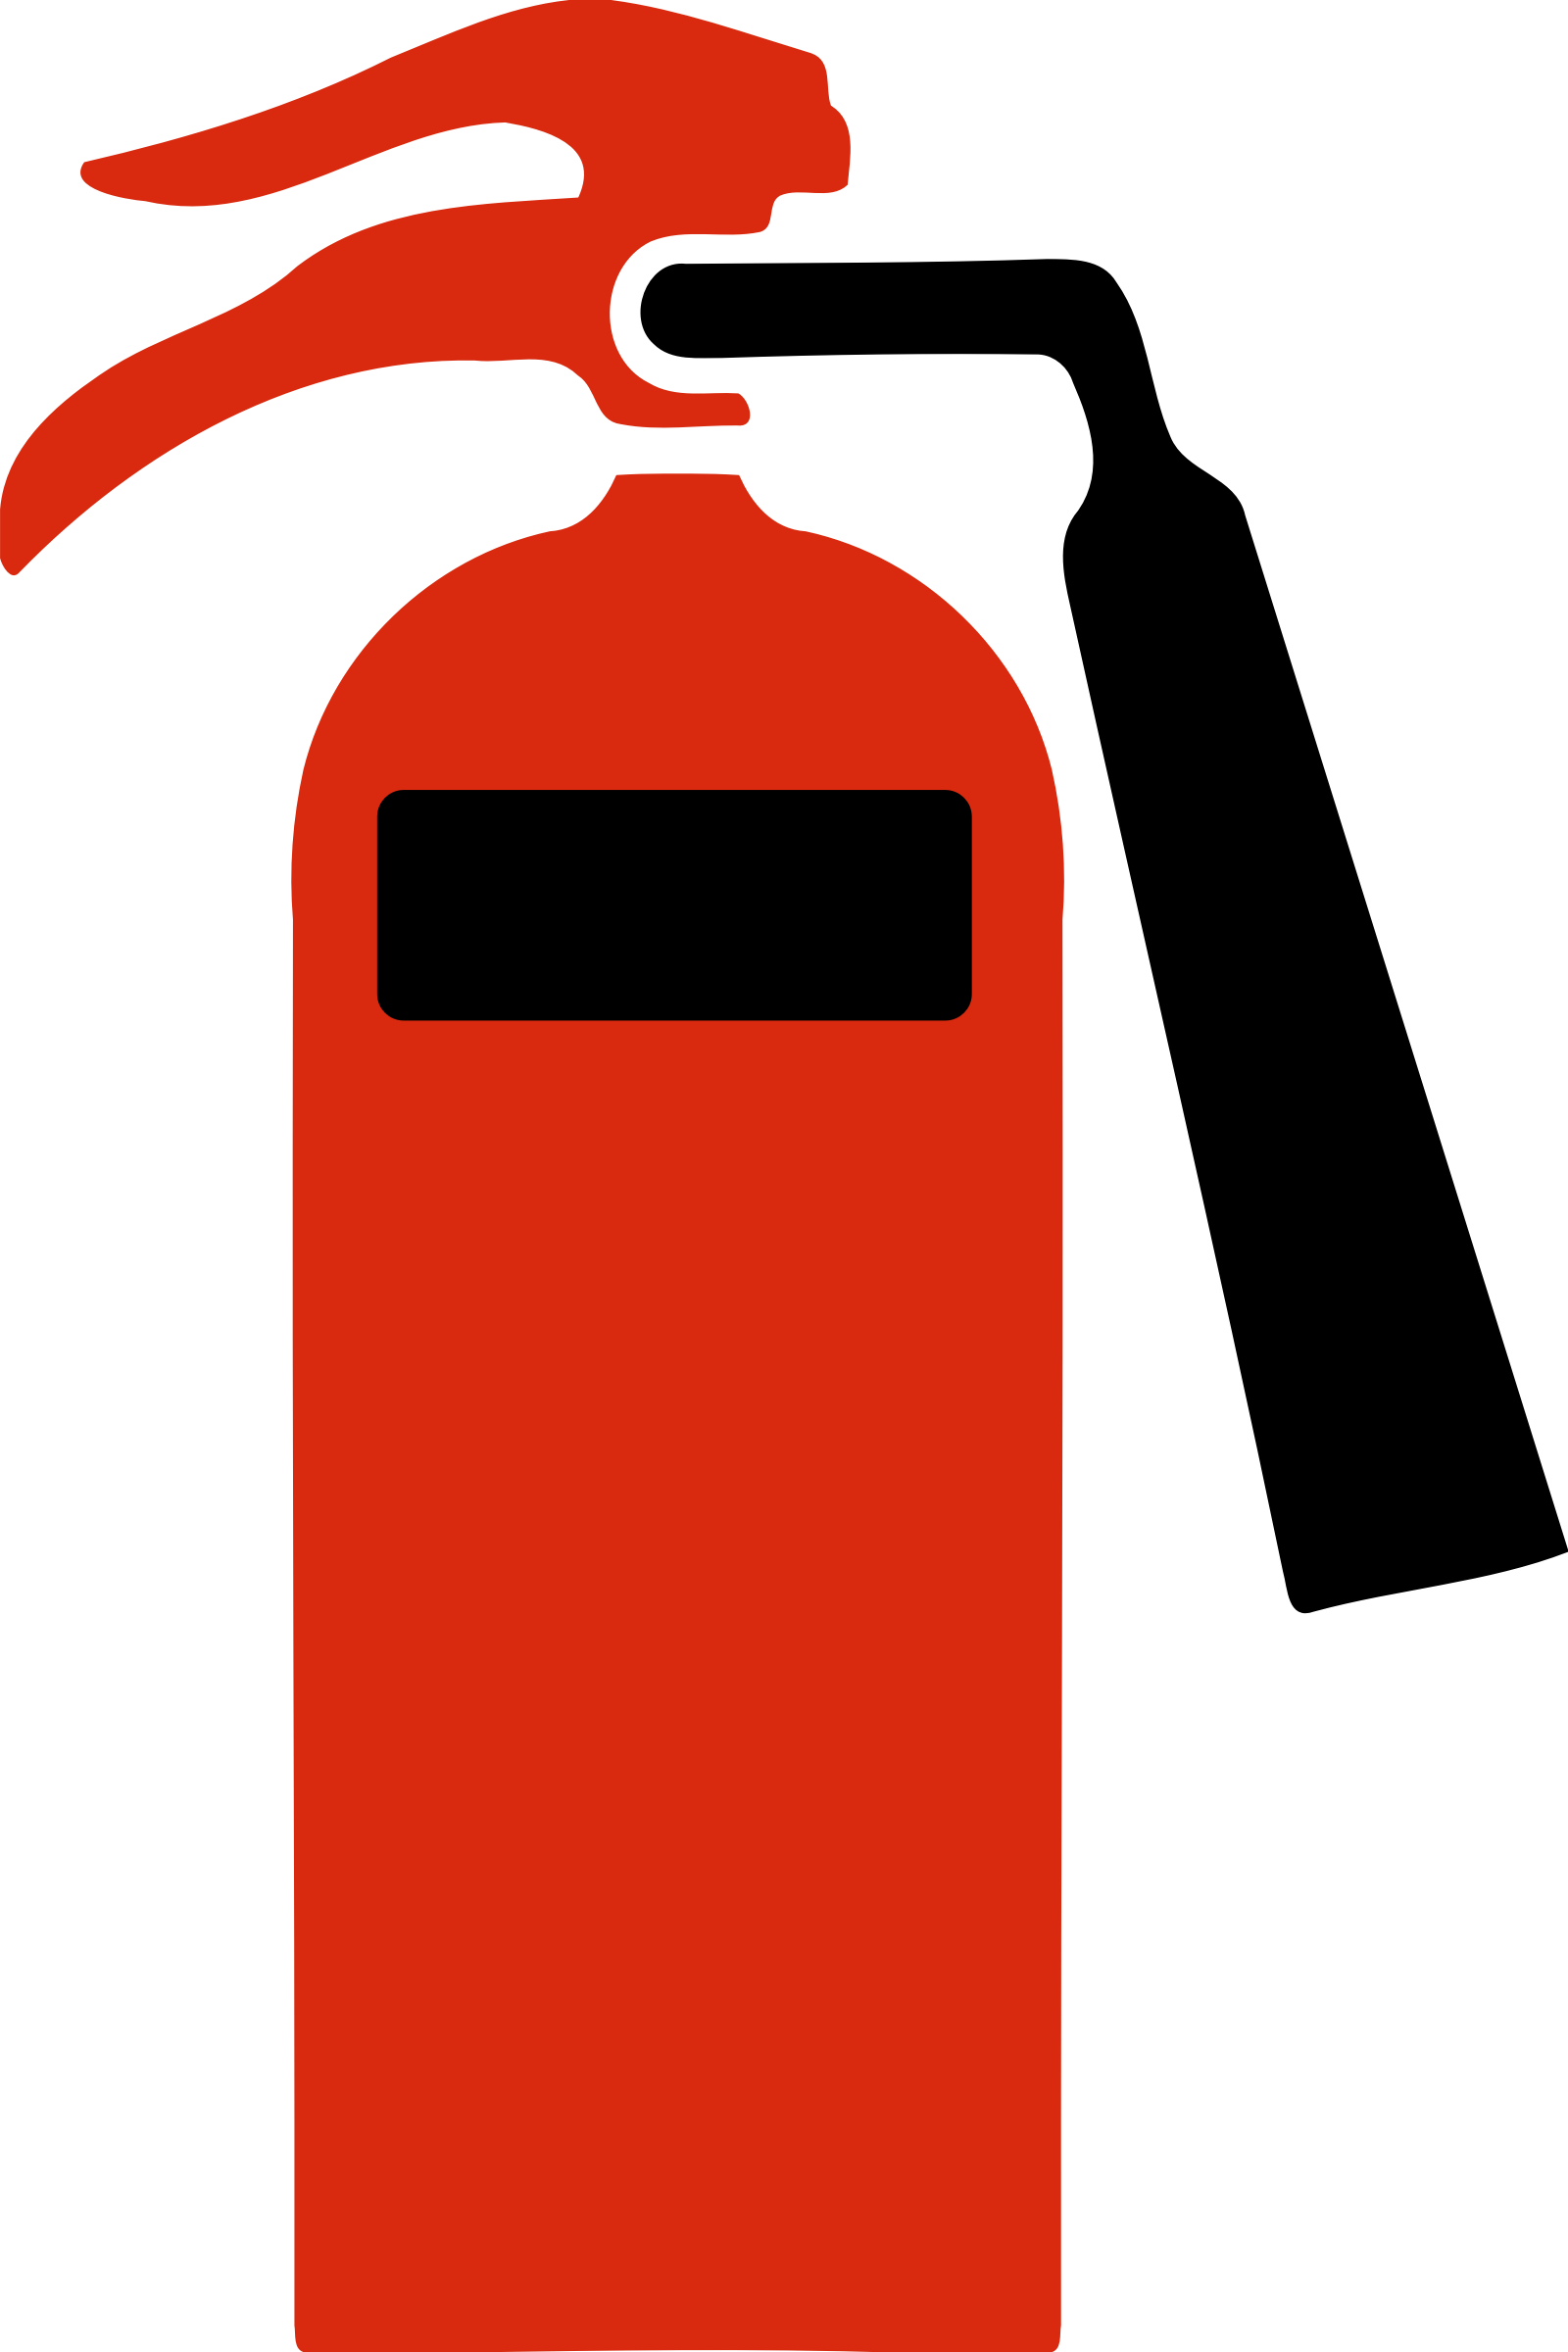 Fire extinguisher images safety. Clipart flames bitmap